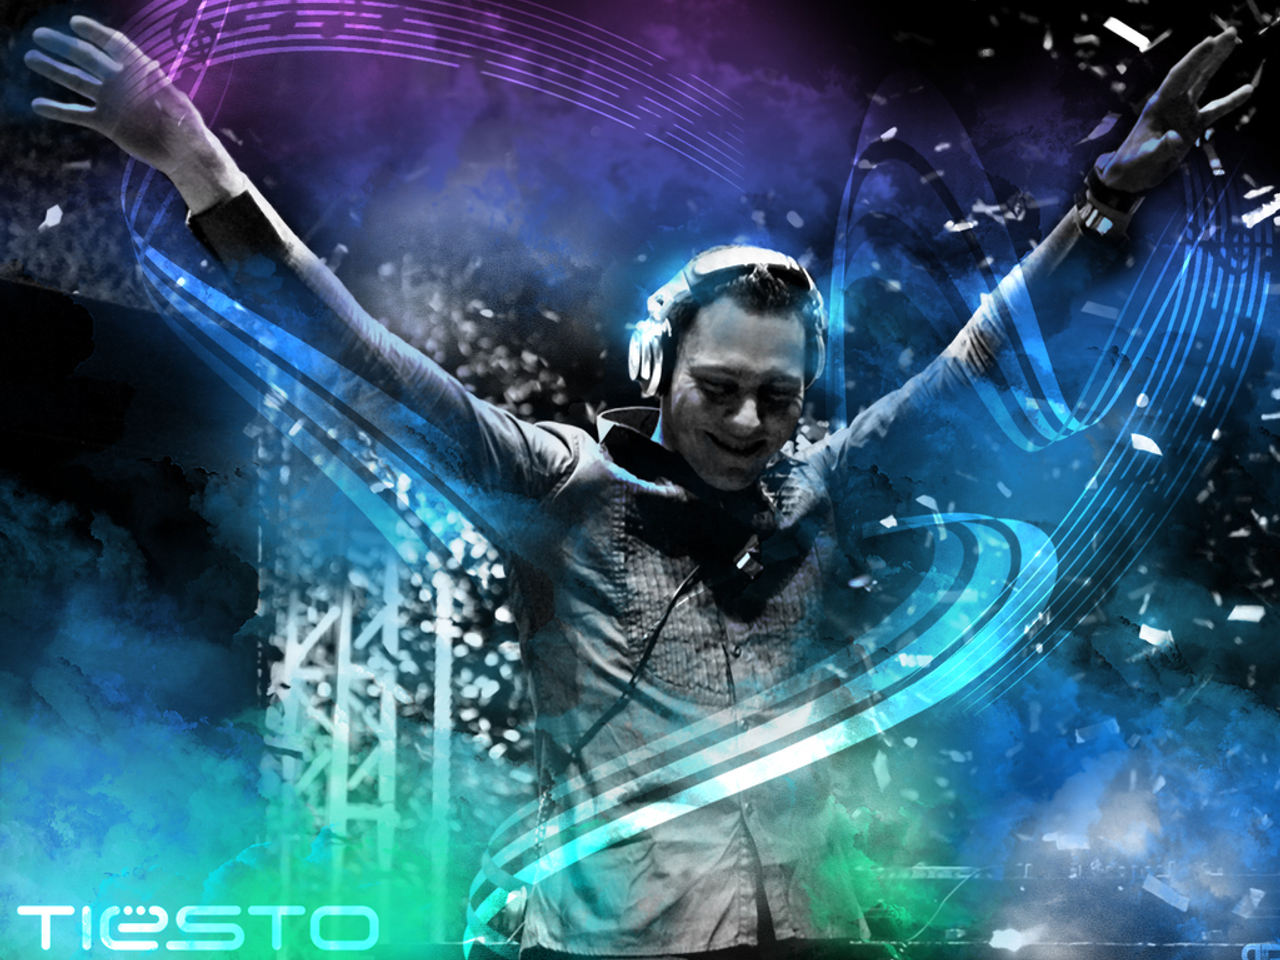 Gratis Radio Online Noticias Videos Dj Tiesto Wallpapers HD 10 1280x960